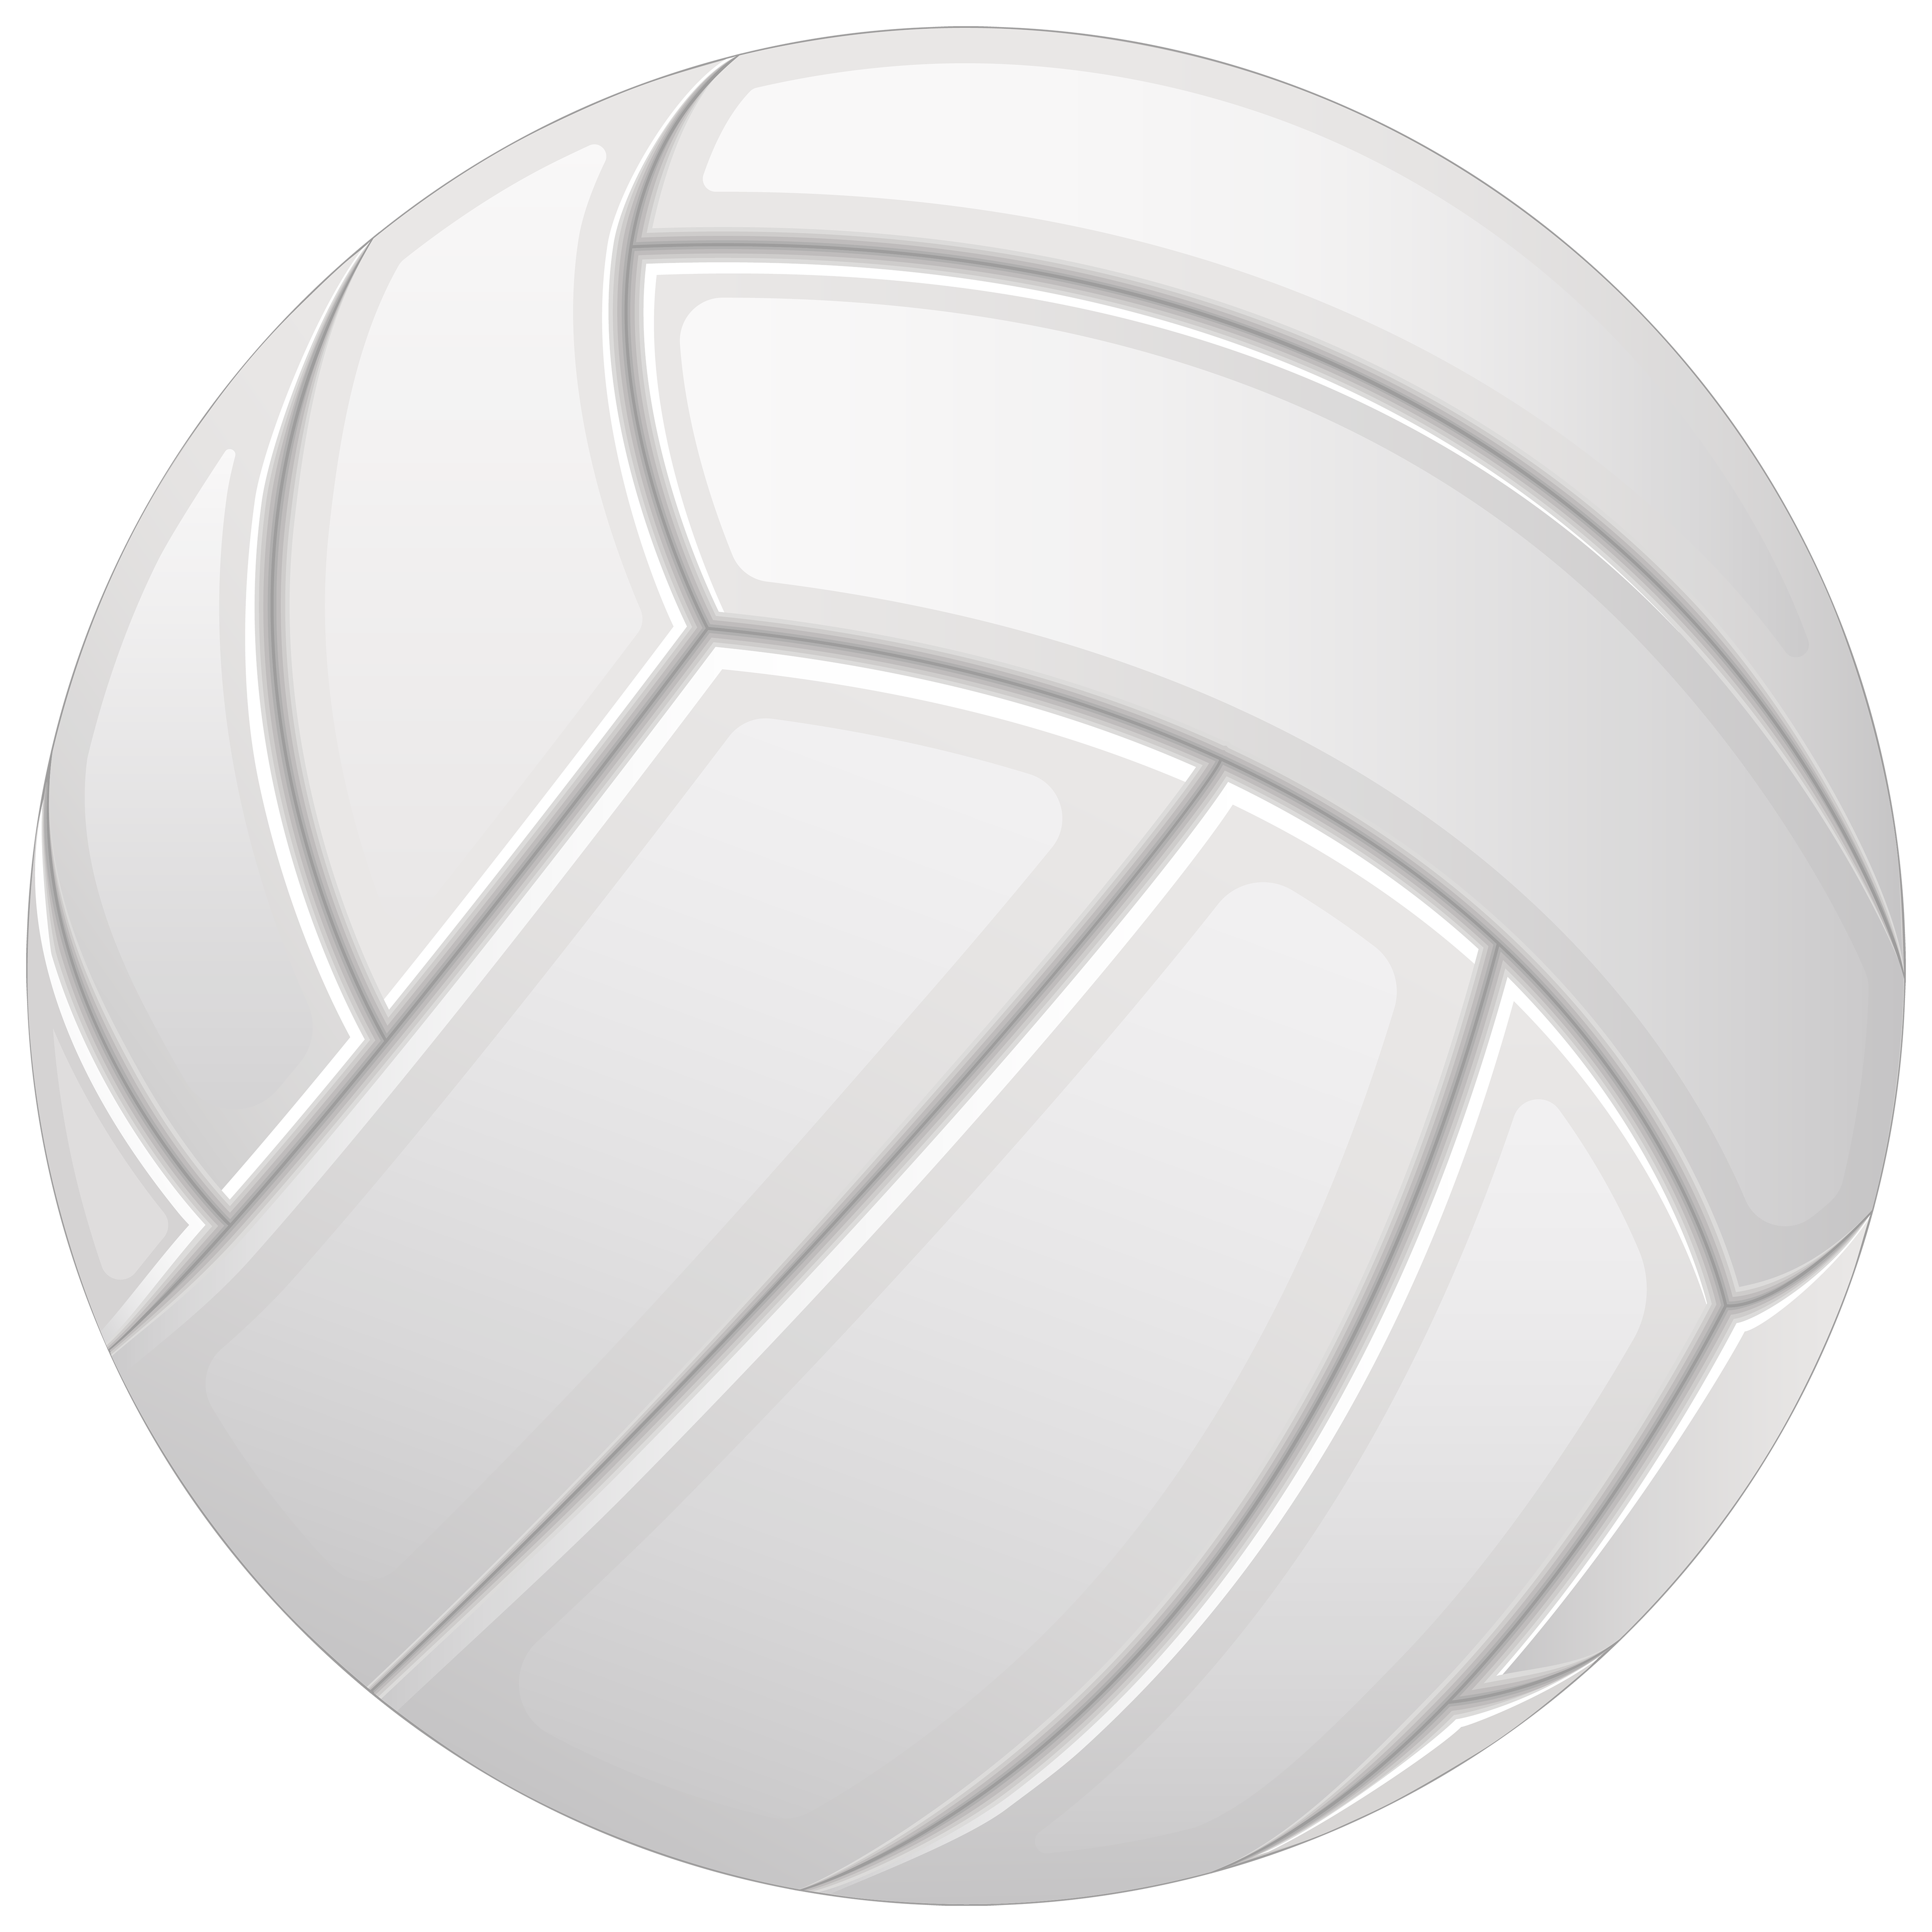 Png best web. Football clipart volleyball